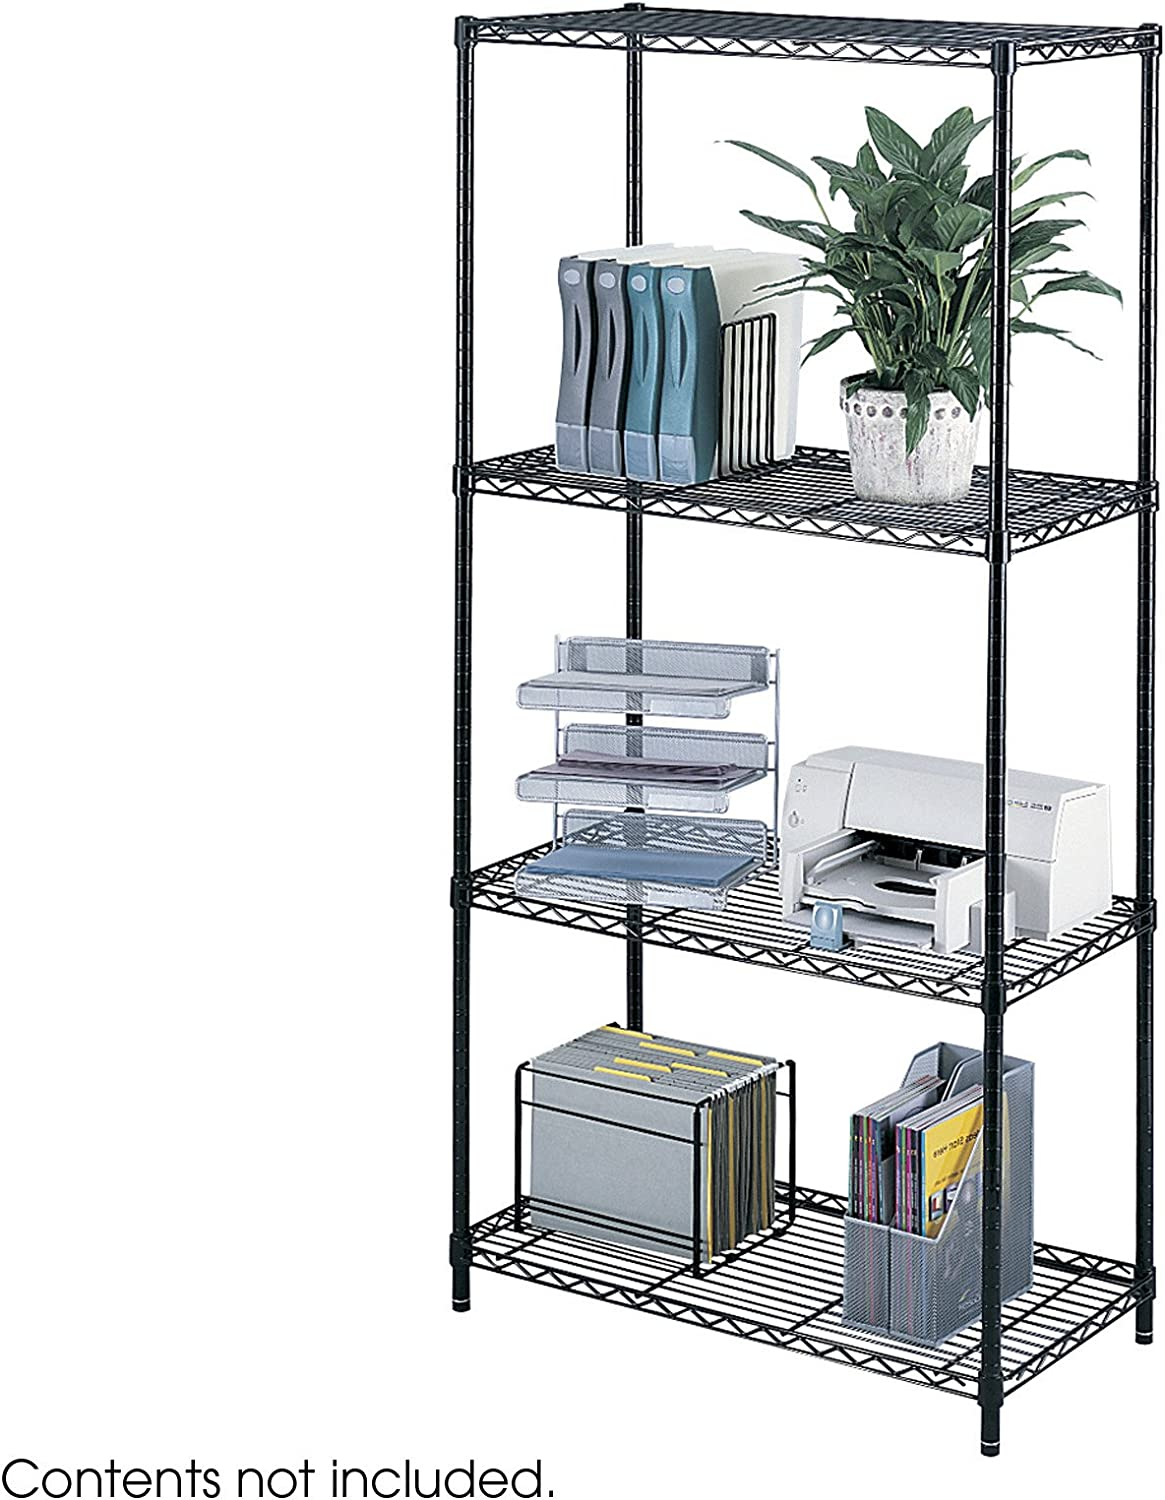 "B000078CV7 Safco Products Industrial Wire Shelving Starter Unit 36""W x 18""D x 72""H (Add-On Unit and Extra Shelf Pack sold separately), Black 81R40EqsT1L.SL1500_"